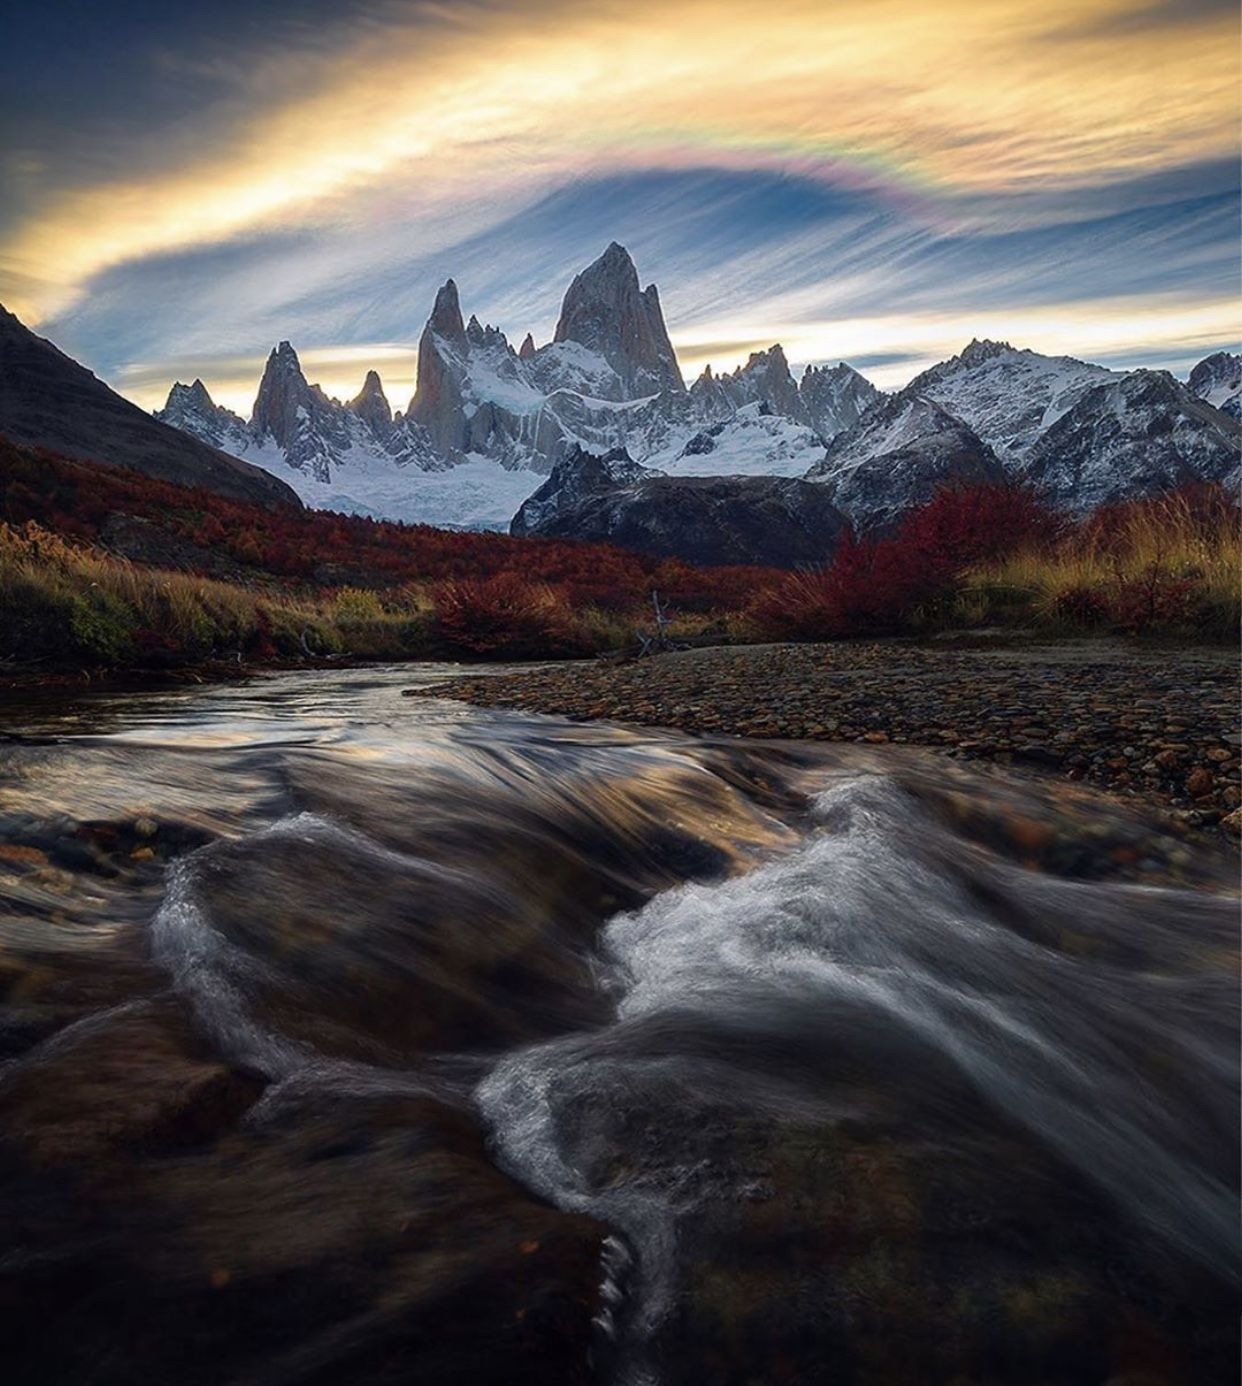 Pin By John Todd On Scenery In 2020 Landscape Photography Nature Photography Nature